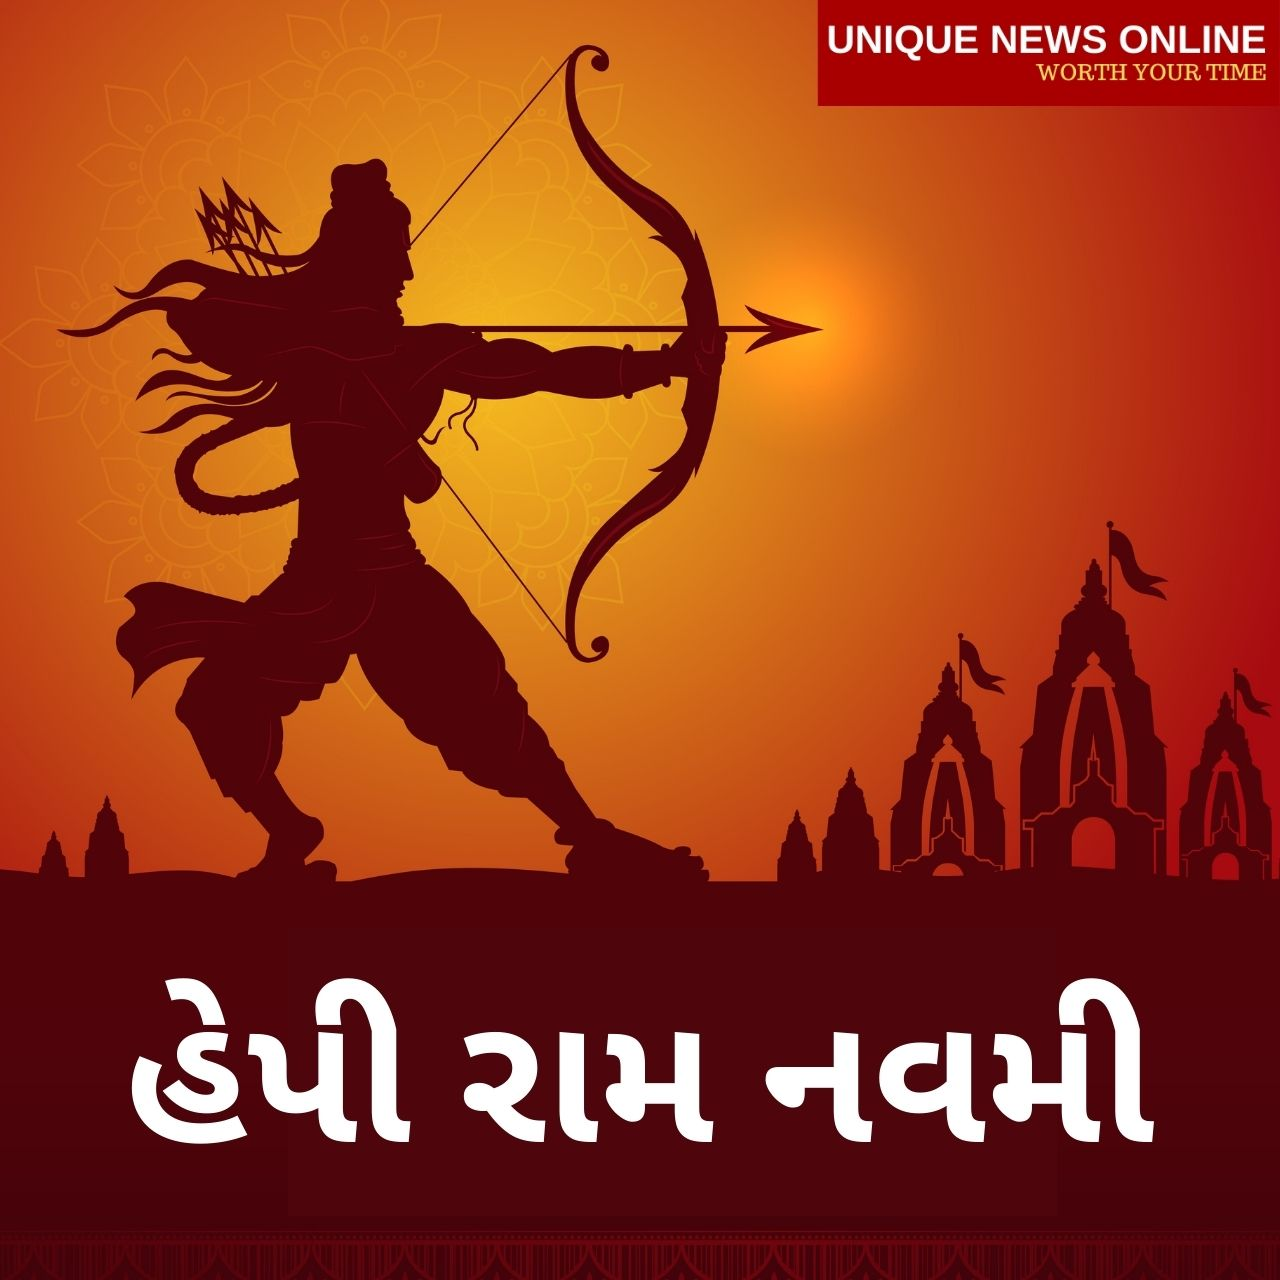 Happy Ram Navami 2021 Wishes in Gujarati, Images, Greetings, Quotes, and Messages to Share